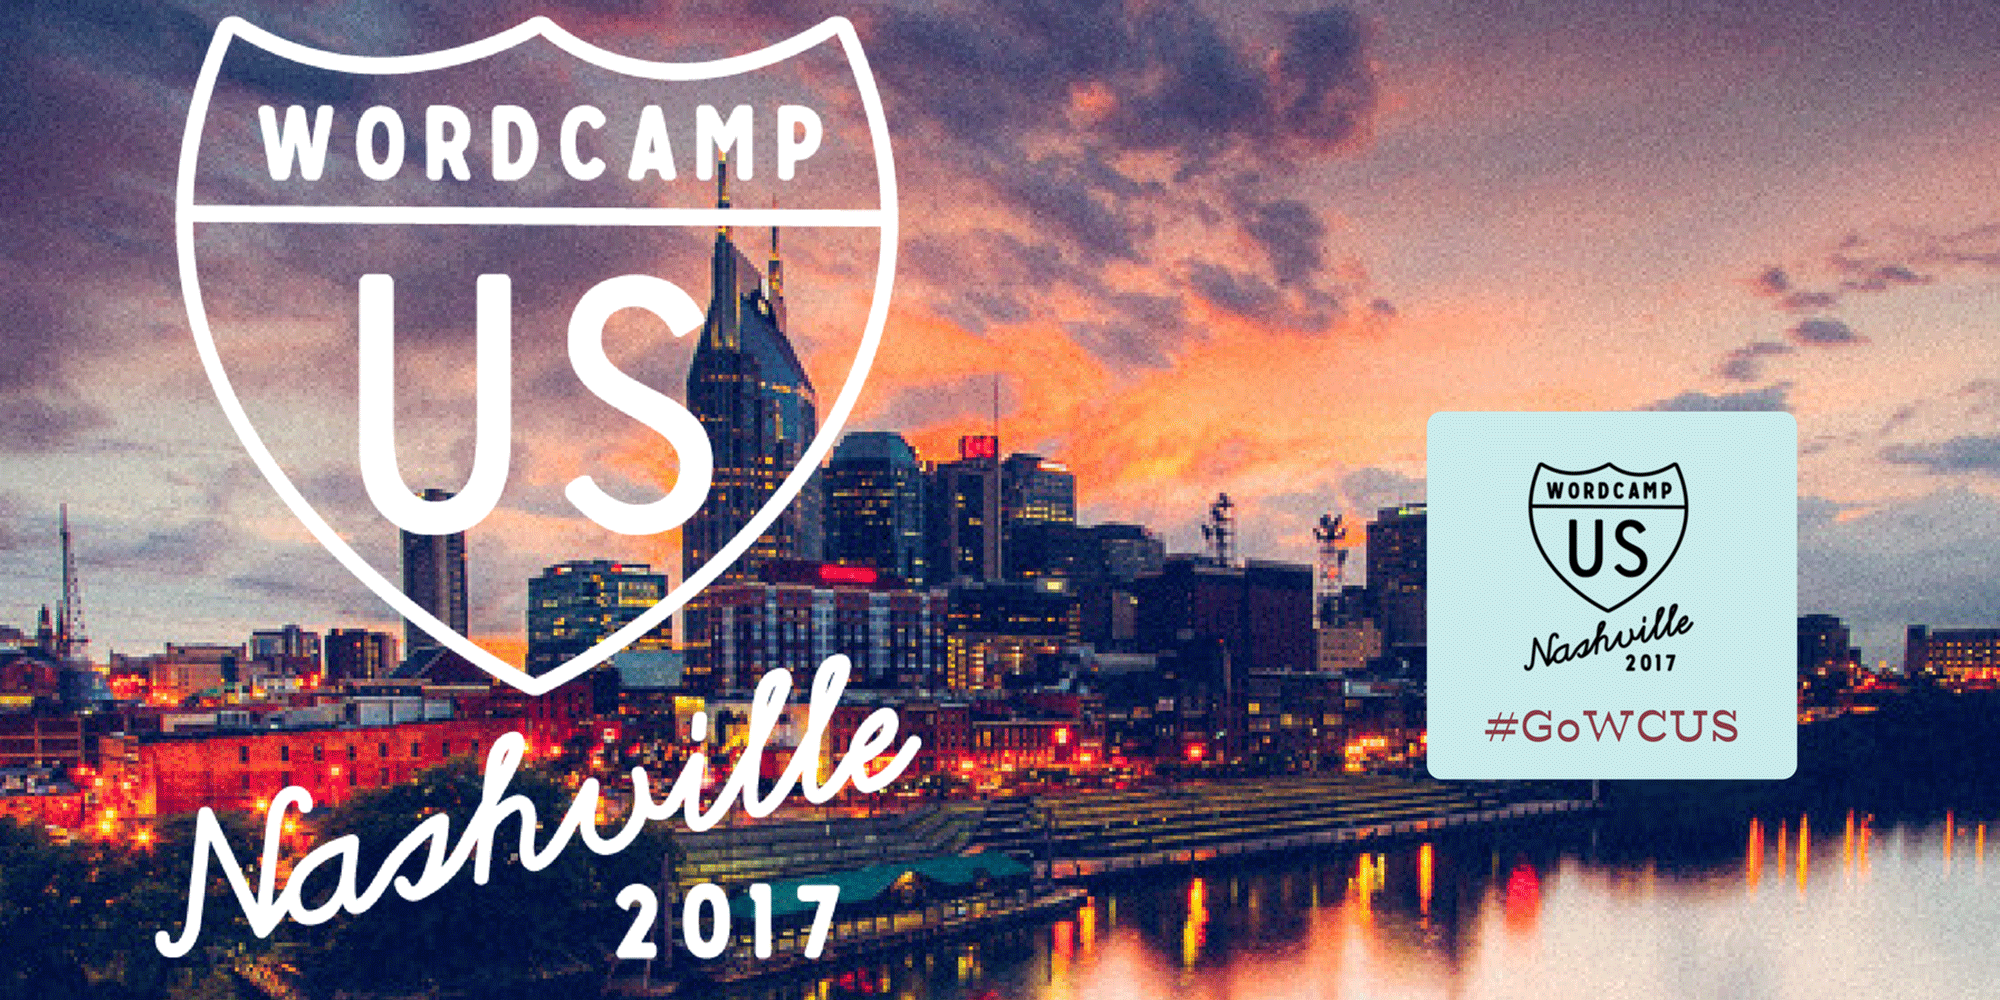 WordCamp US 2017, WordCamp US Nashville 2017